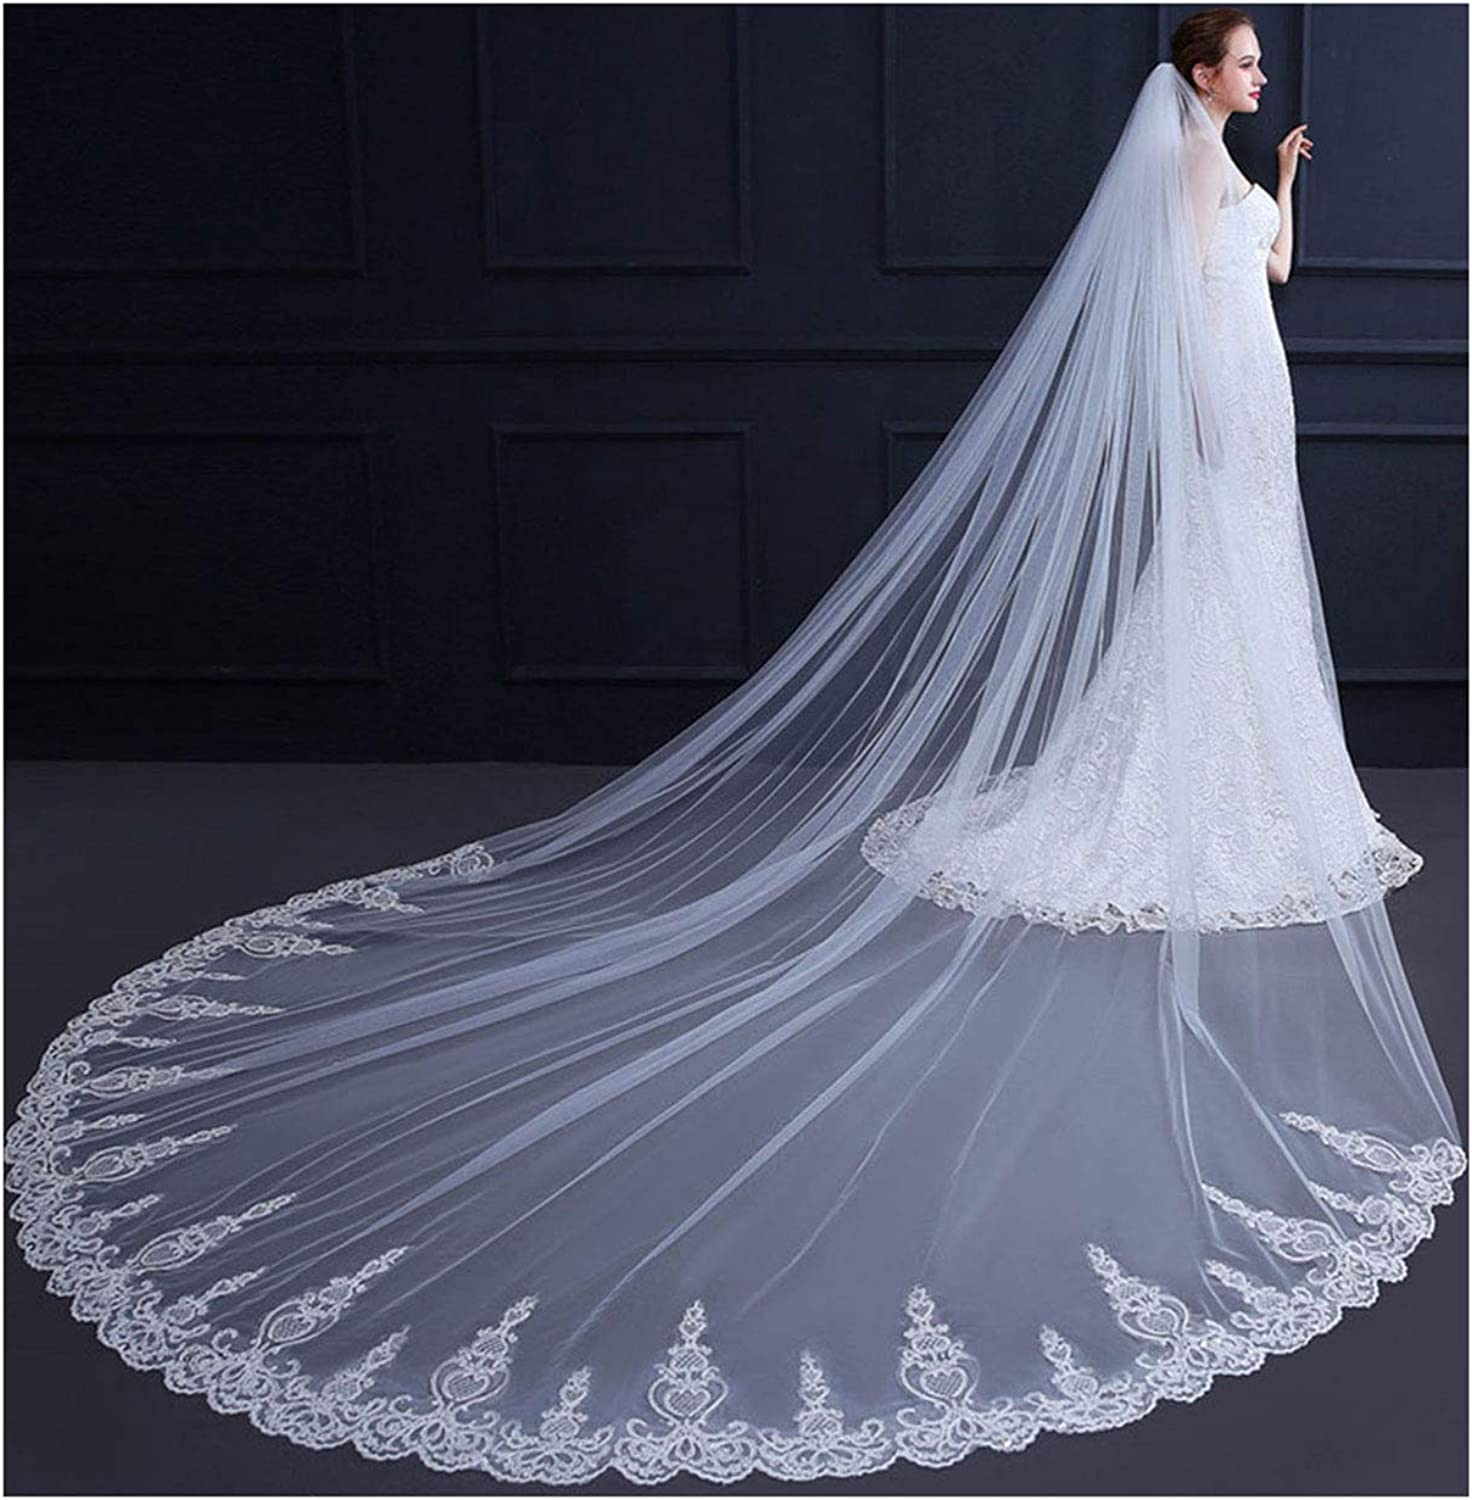 AIBIYI Cathedral Wedding Veil Sequins Lace (350cm) Long Bridal Veil with Comb ABYV44